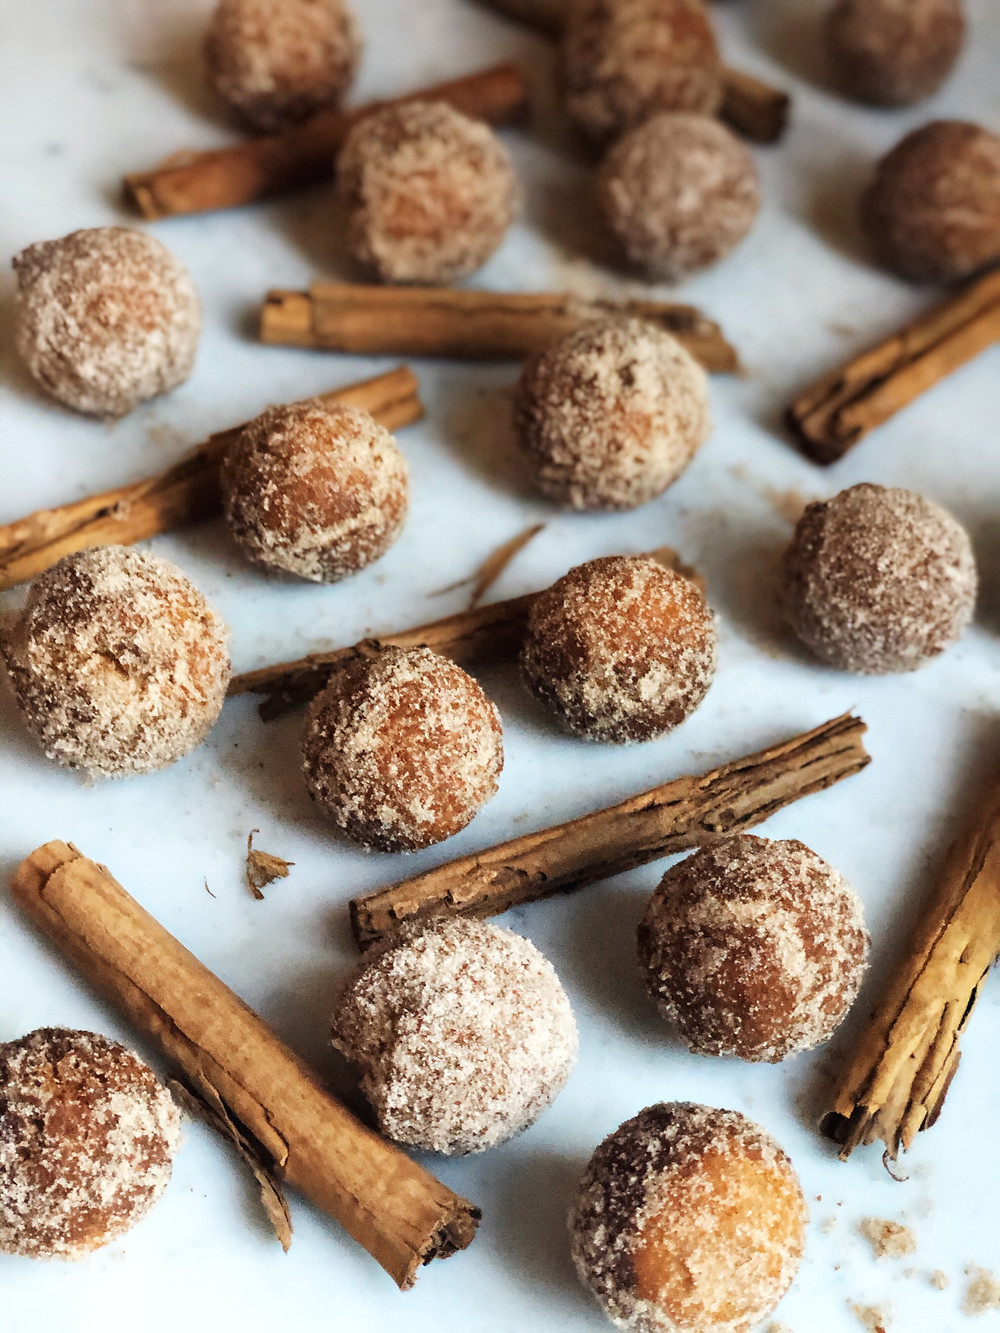 Spiced Donut Holes